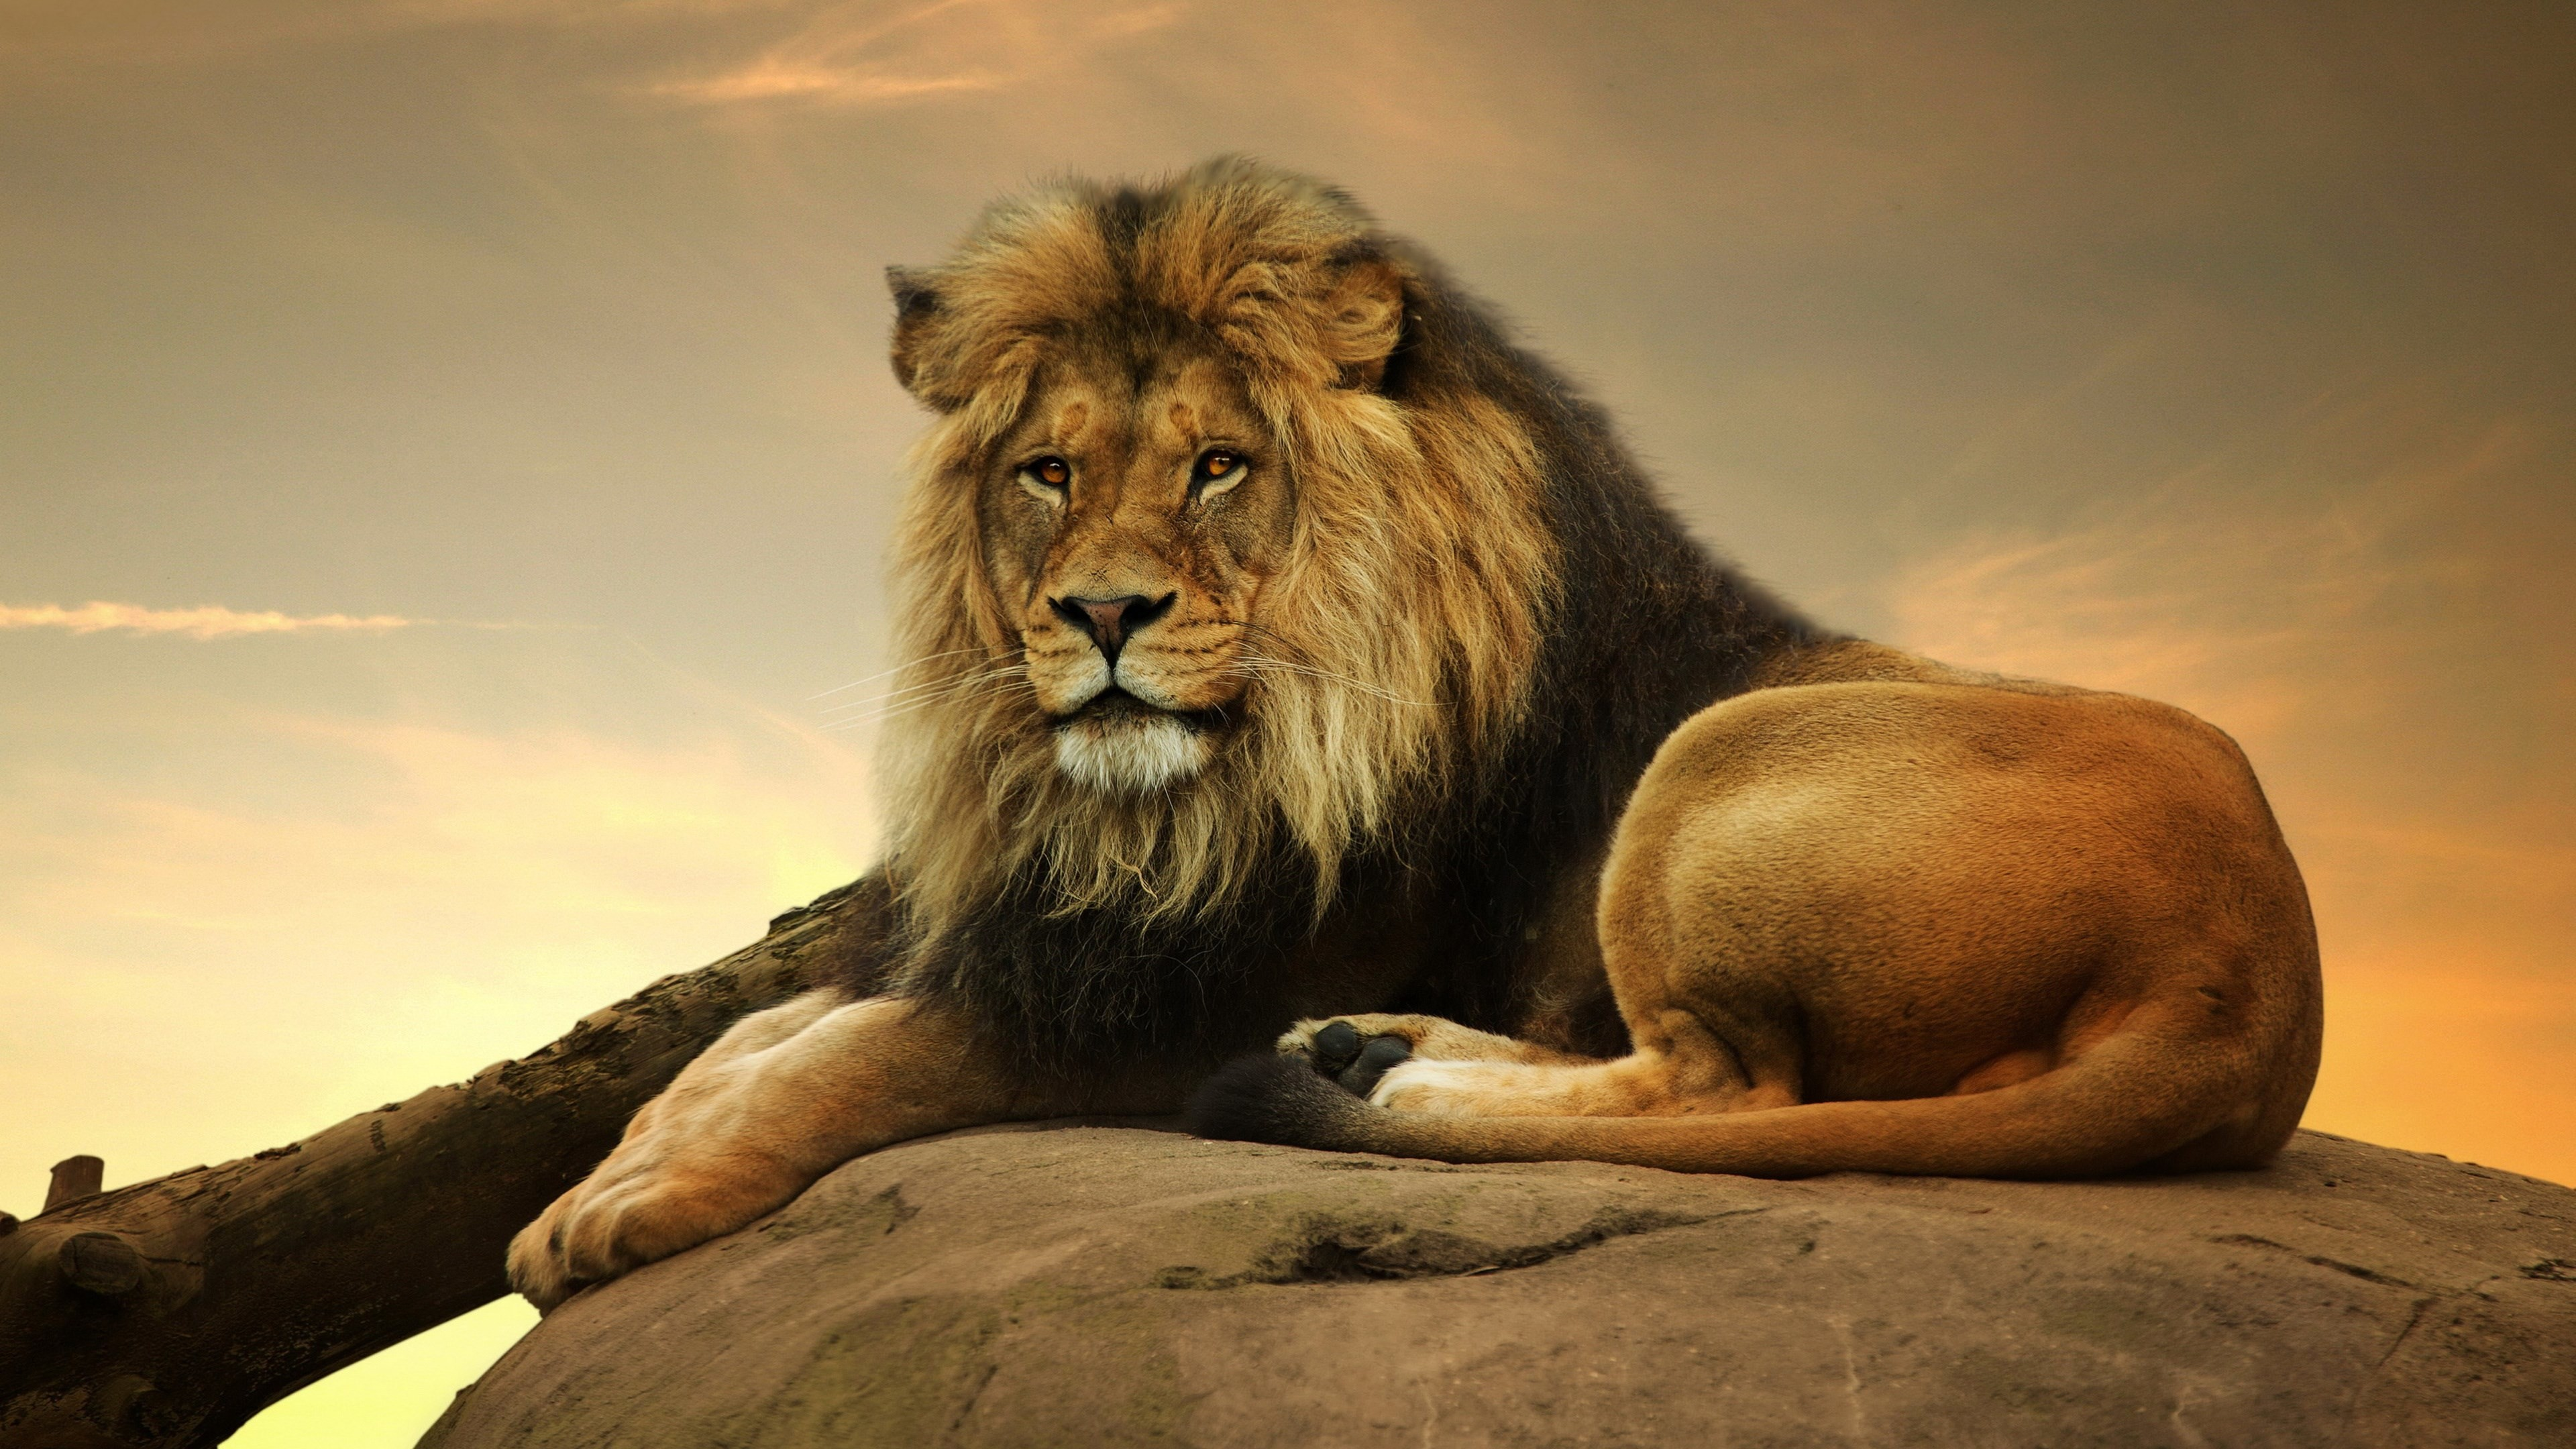 3840x2160 male lion 4k resolution desktop wallpaper